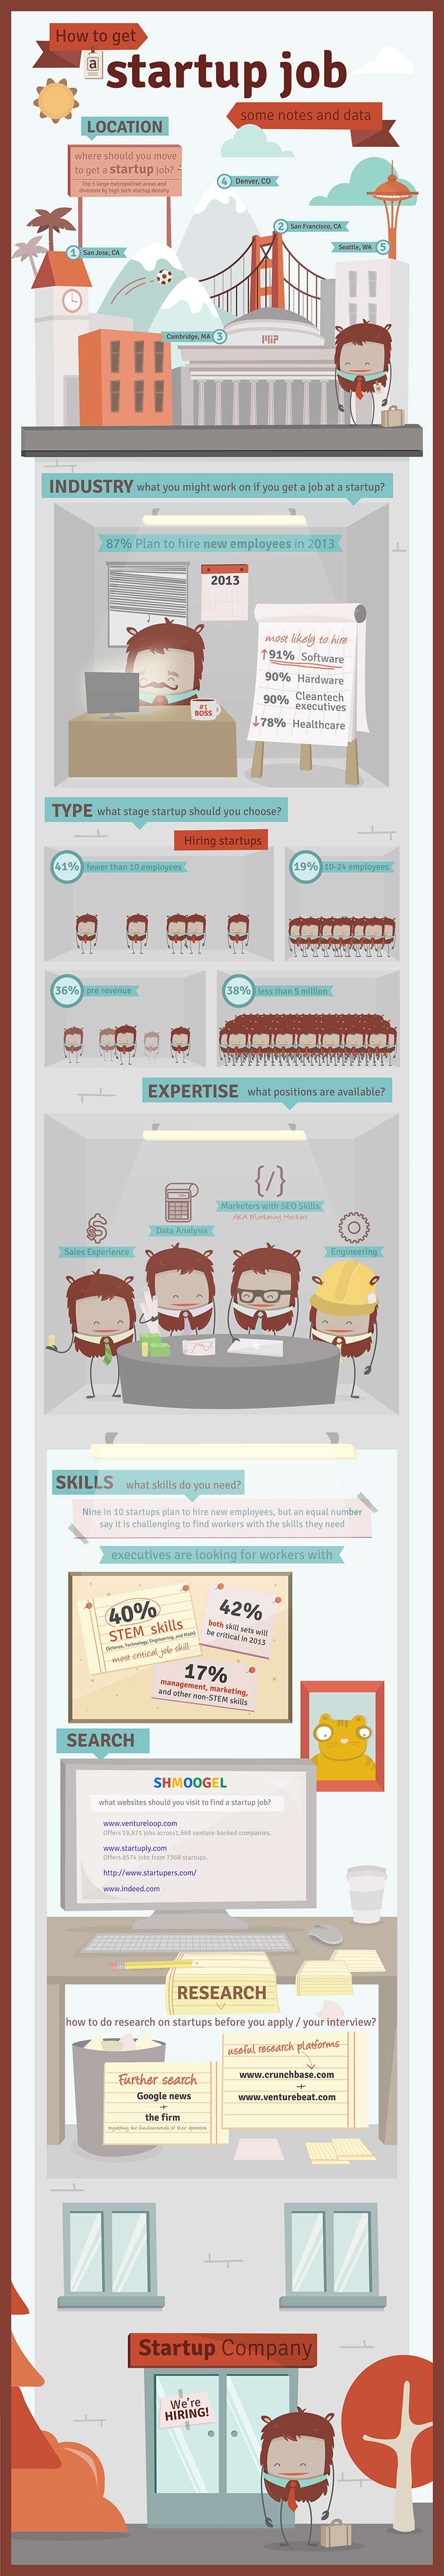 How To Get Startup Job Some Notes And Data [Infographic]